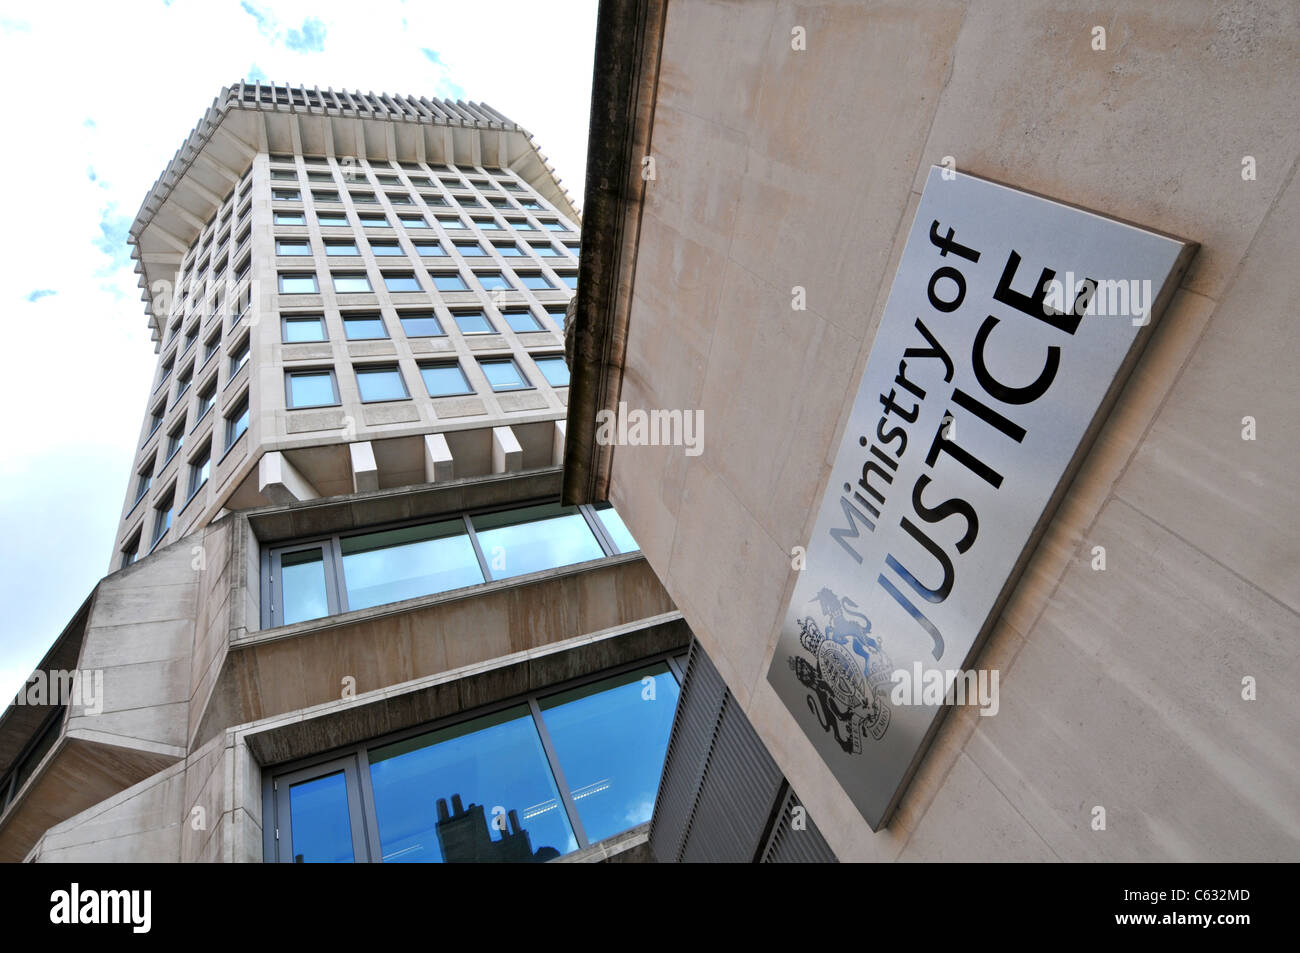 Ministry of Justice building, London, Britain, UK - Stock Image